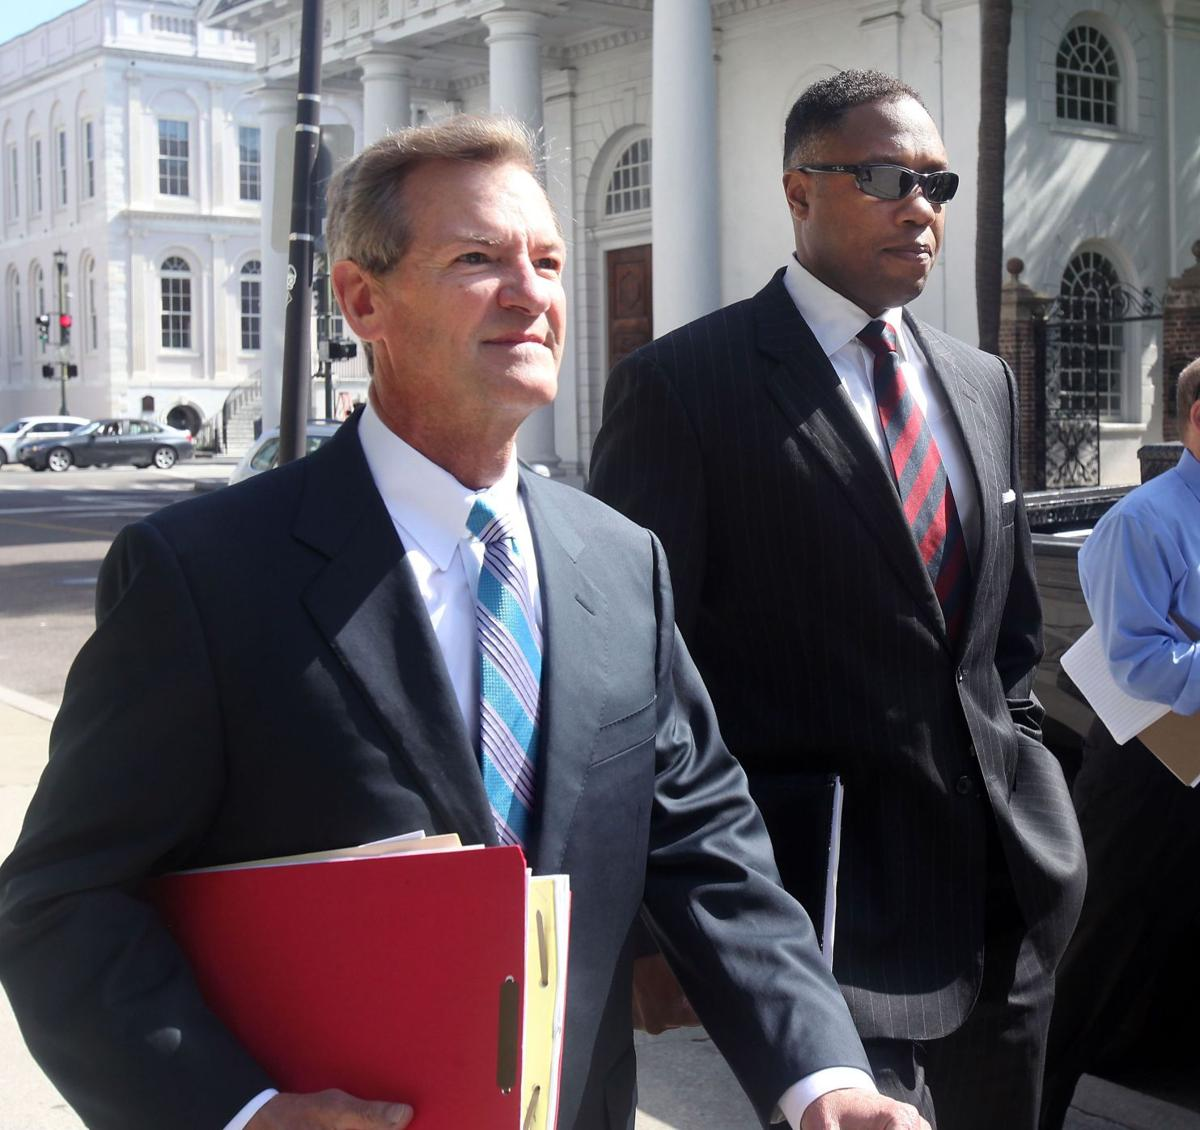 Former S.C. State attorney pleads guilty to failing to report kickback scheme